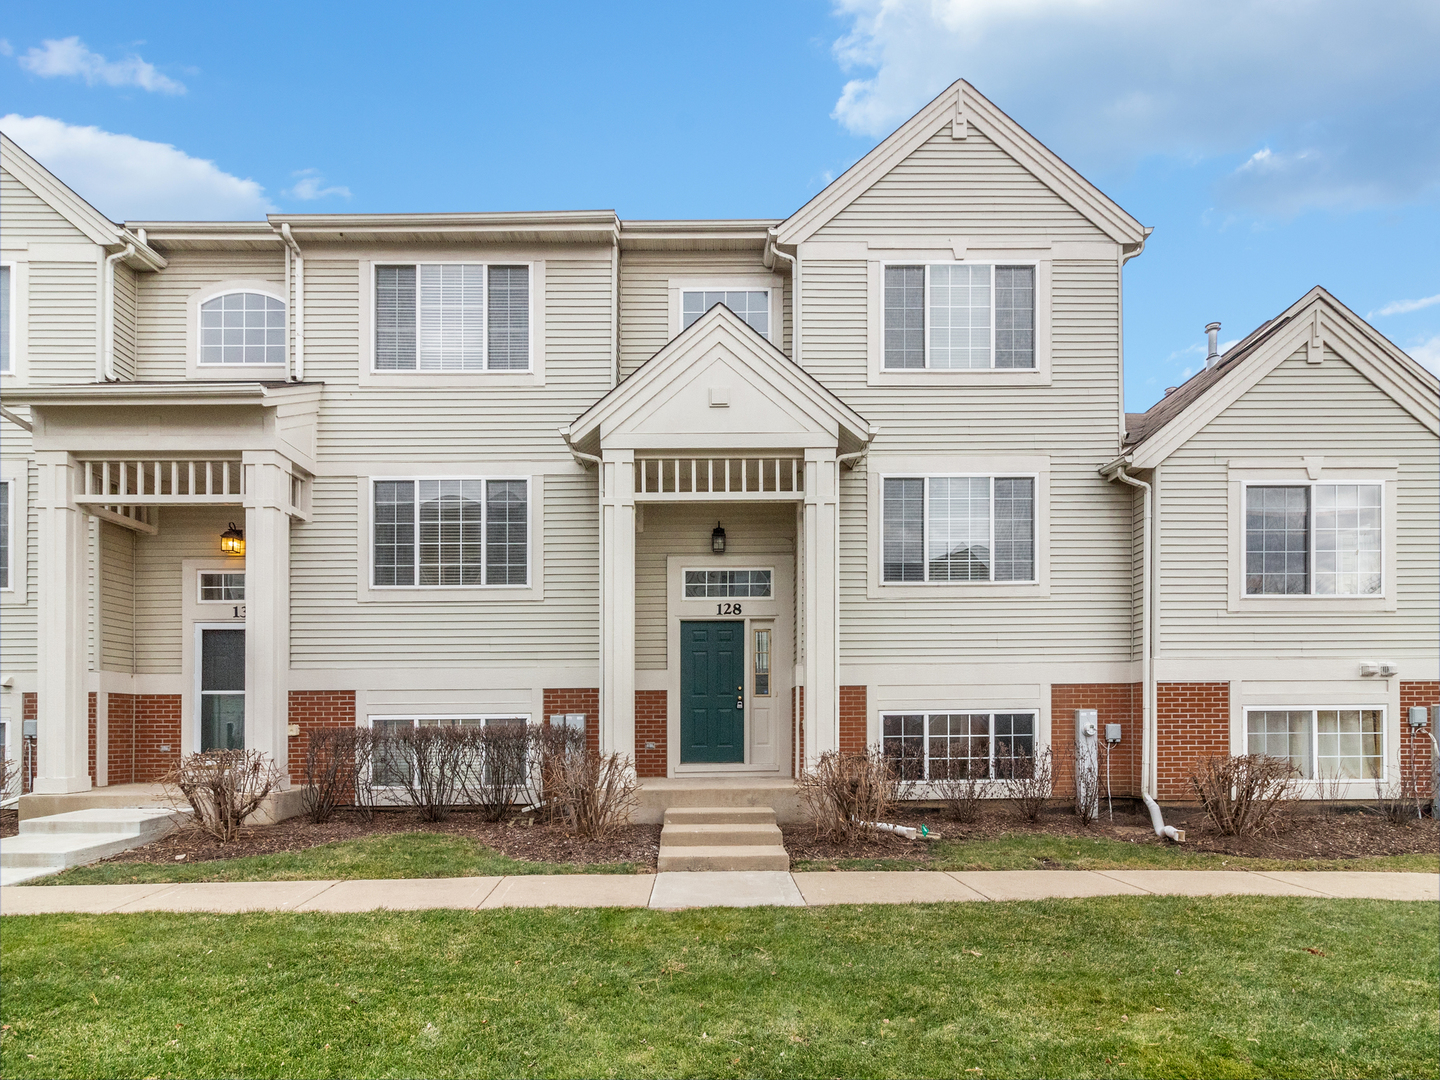 Photo for 128 New Haven Drive, Cary, IL 60013 (MLS # 10592029)